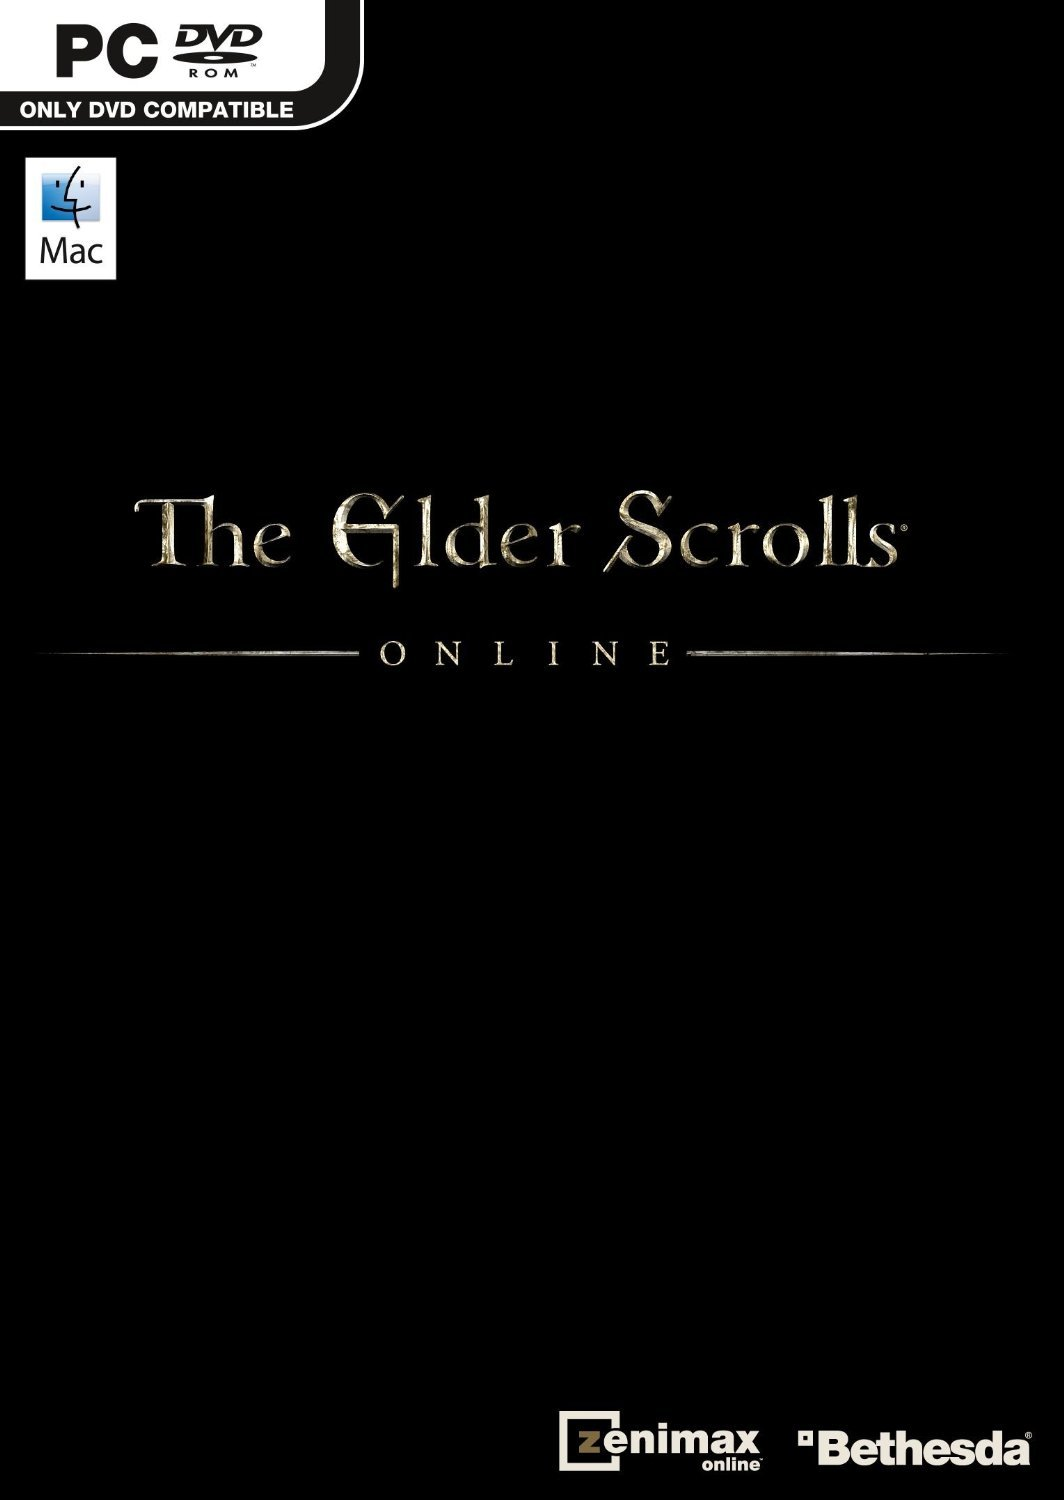 the-elder-scrolls-online-cover.jpg